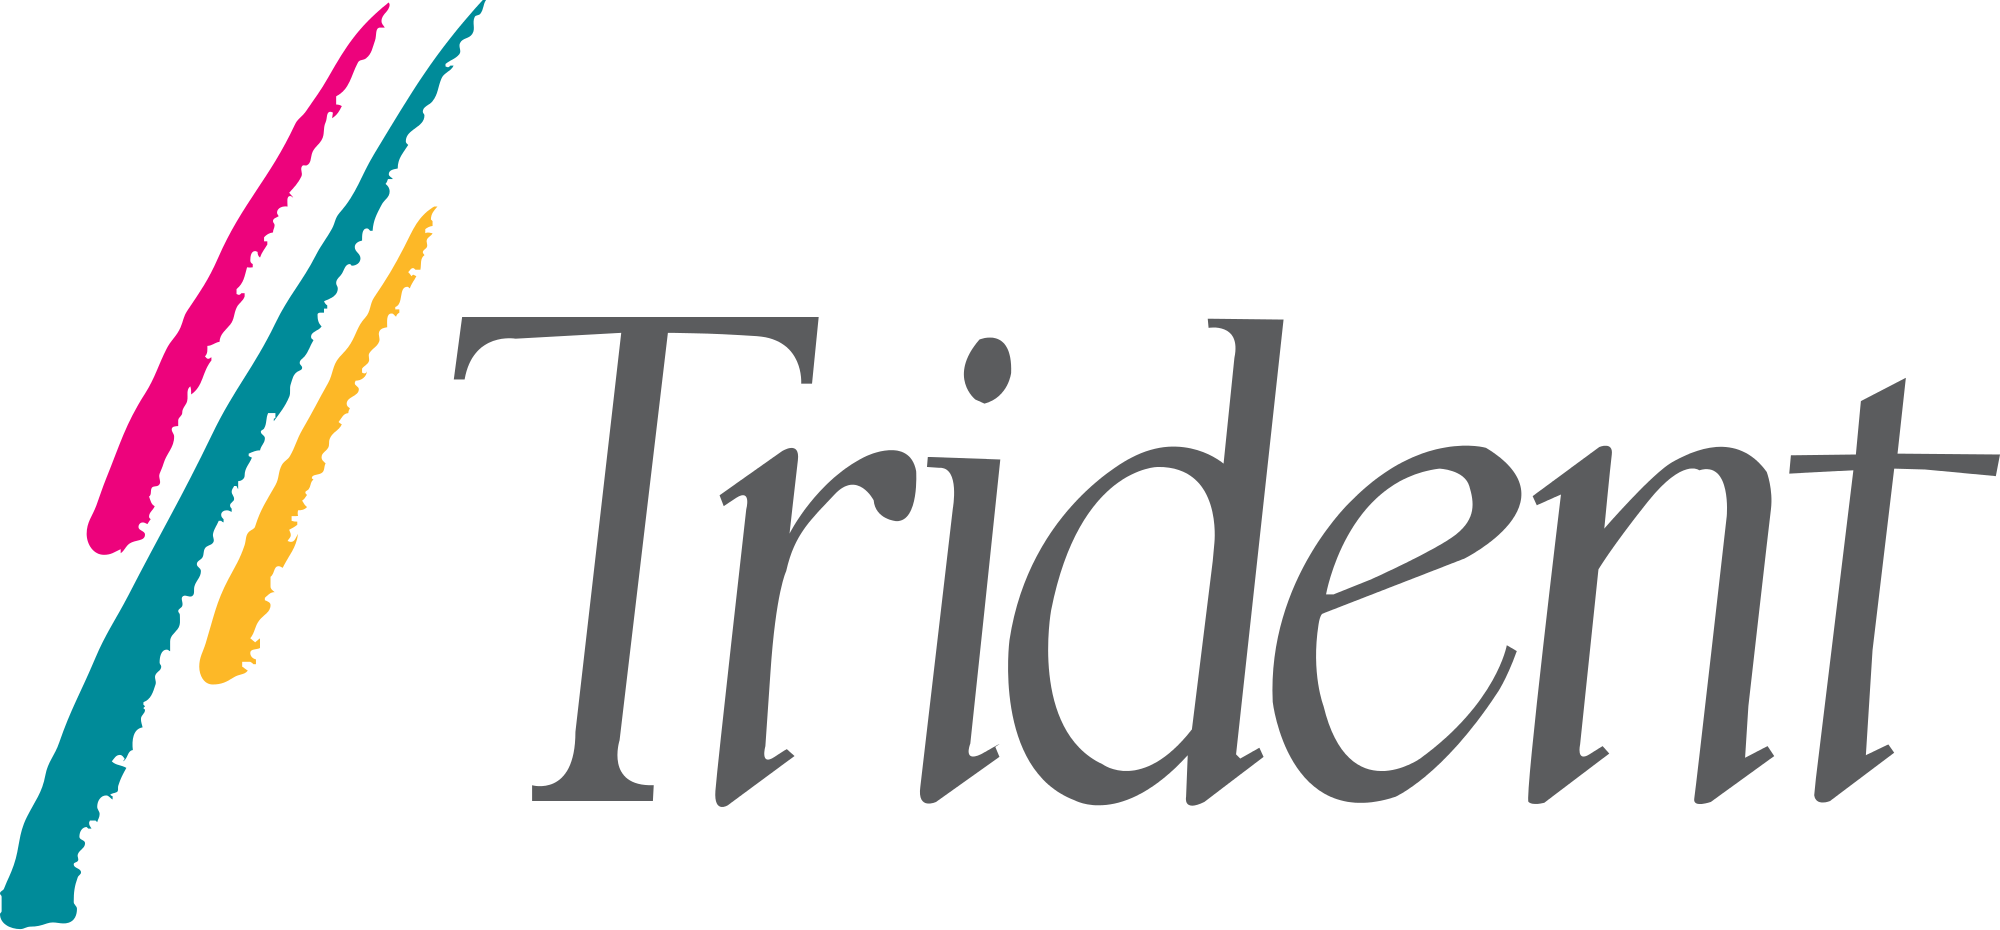 2000px-Trident_Microsystems_logo.png